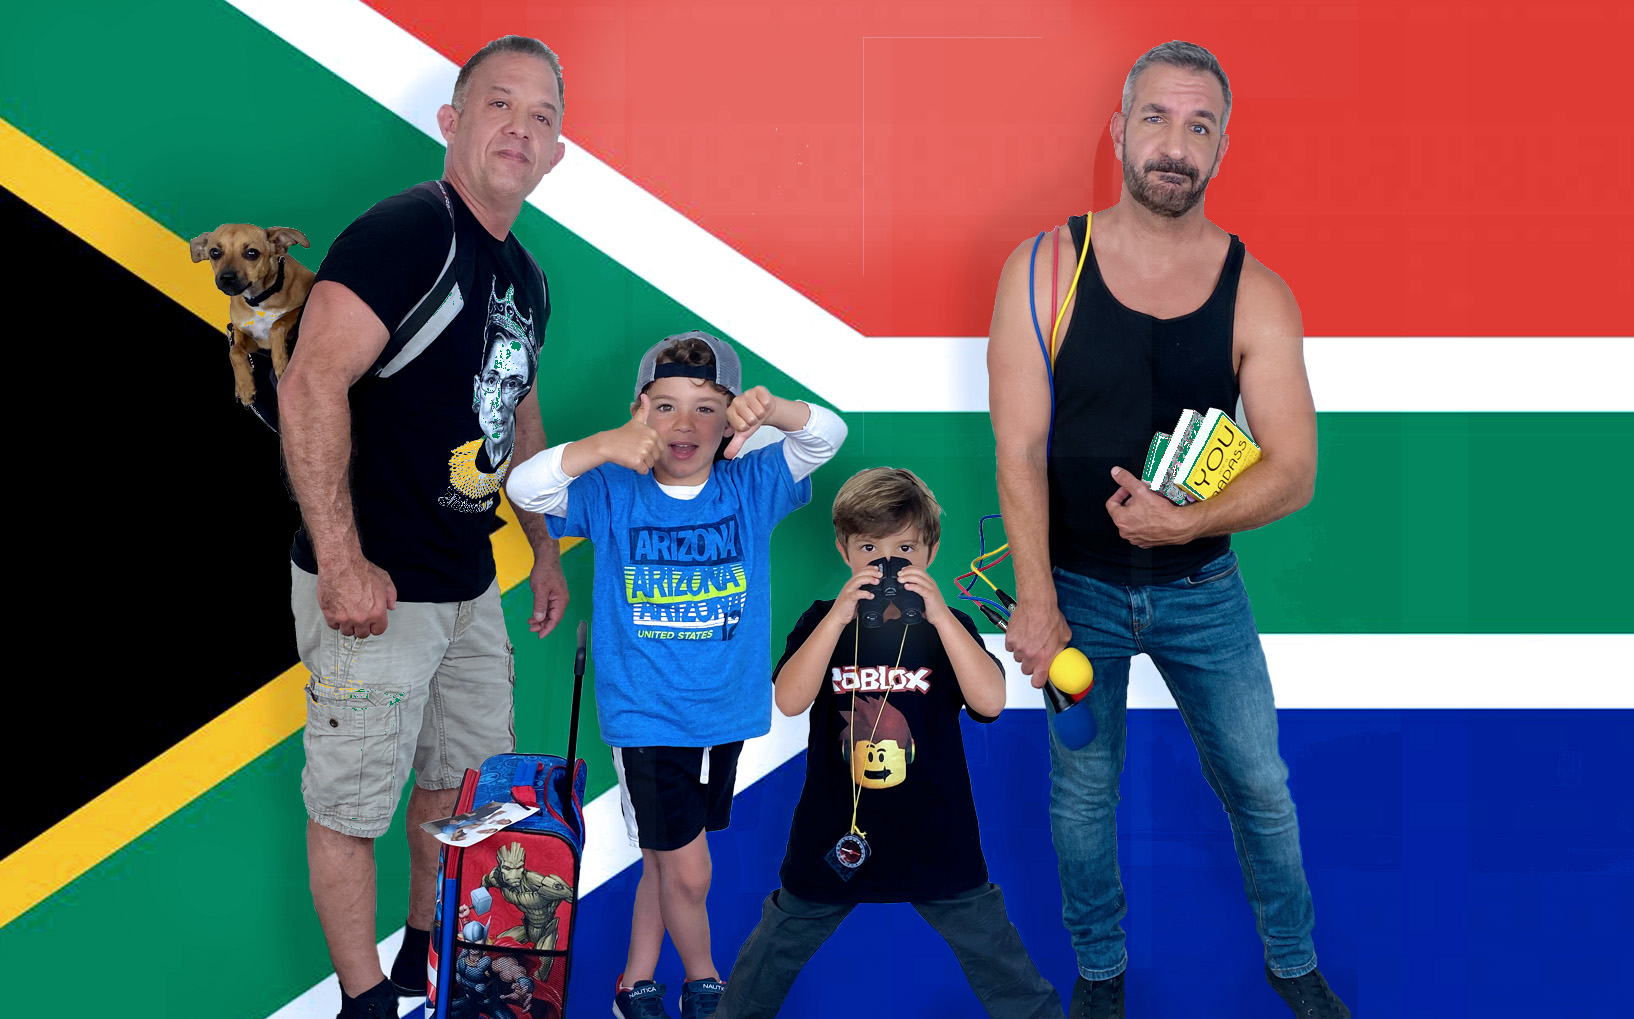 Daddy Squared Around the World: South Africa